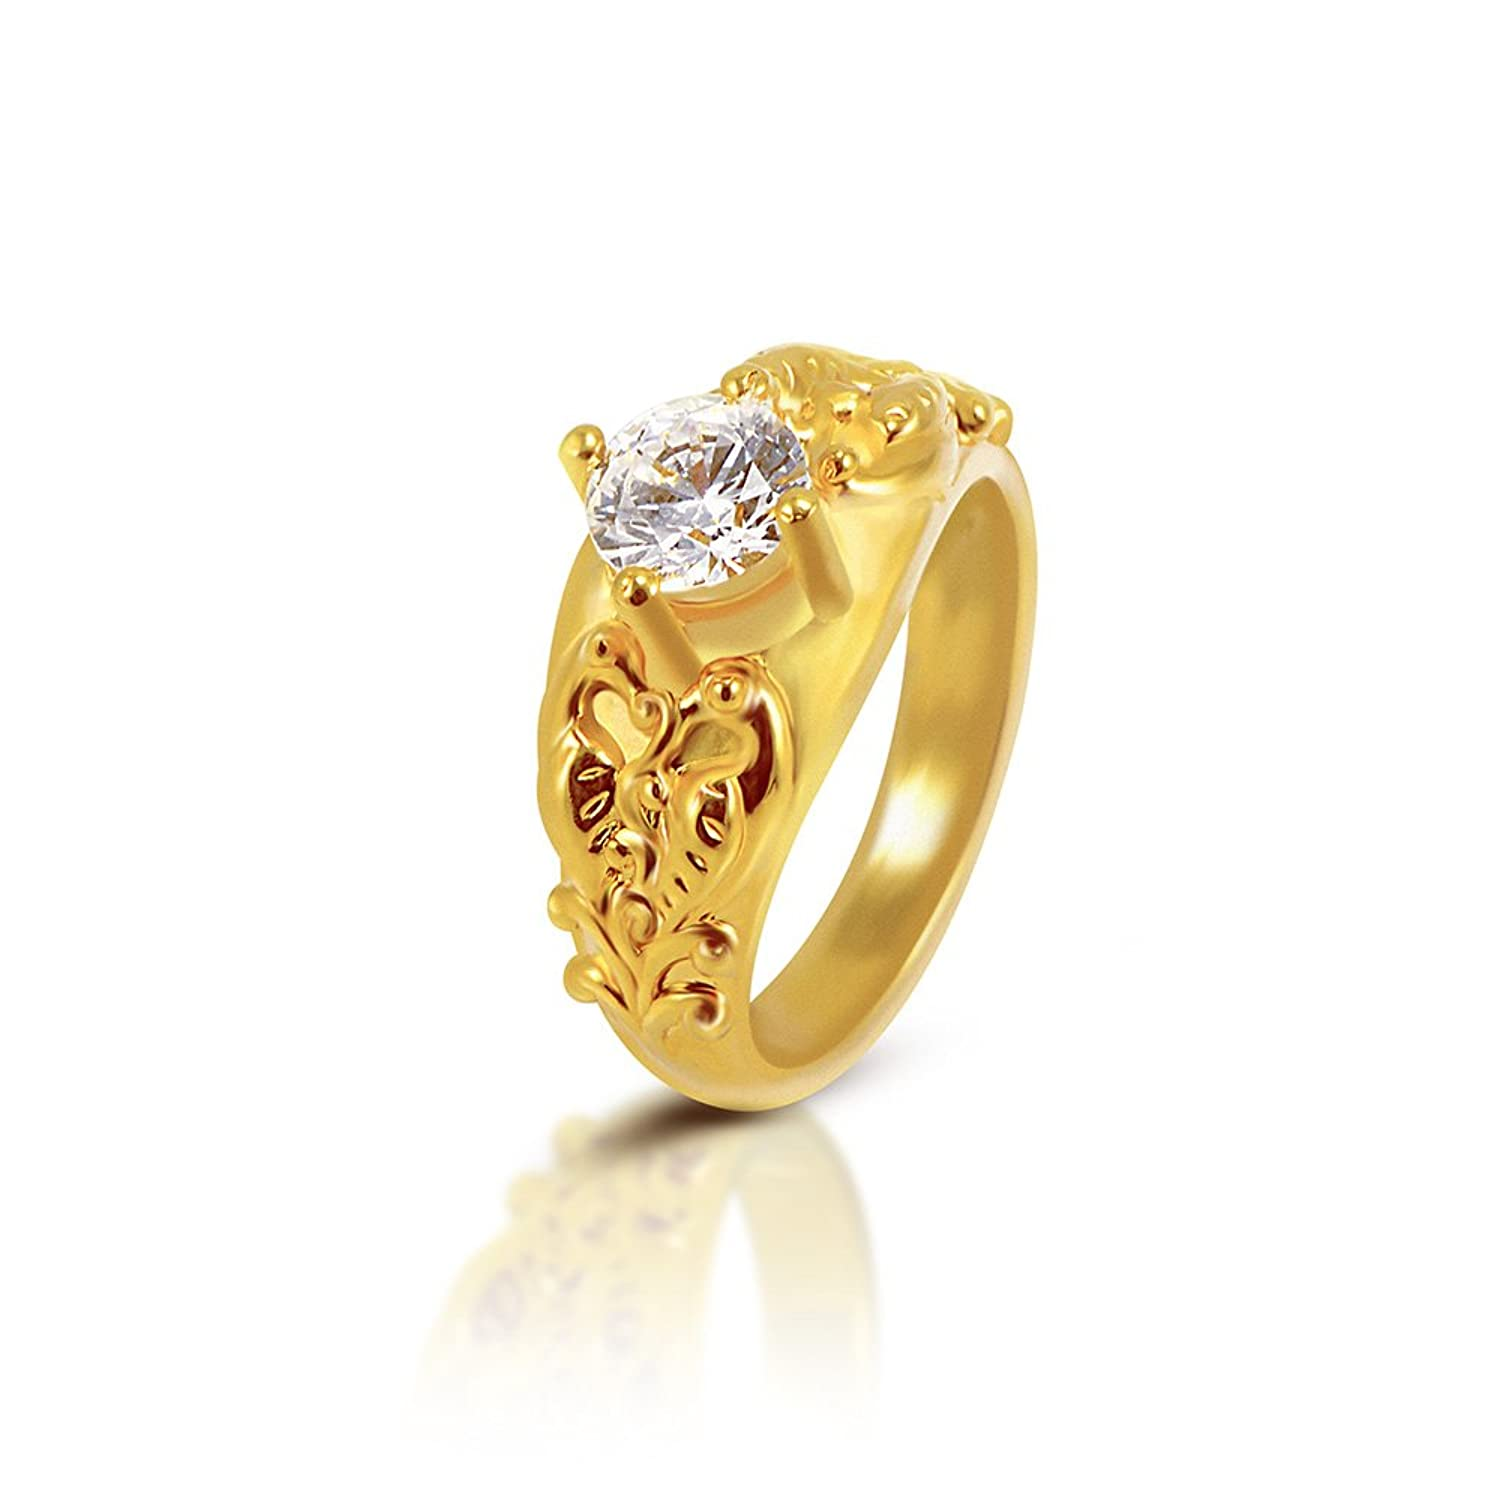 and gold best index rings wedding bridal engagement unusual alt hbz diamond alternative non fashion